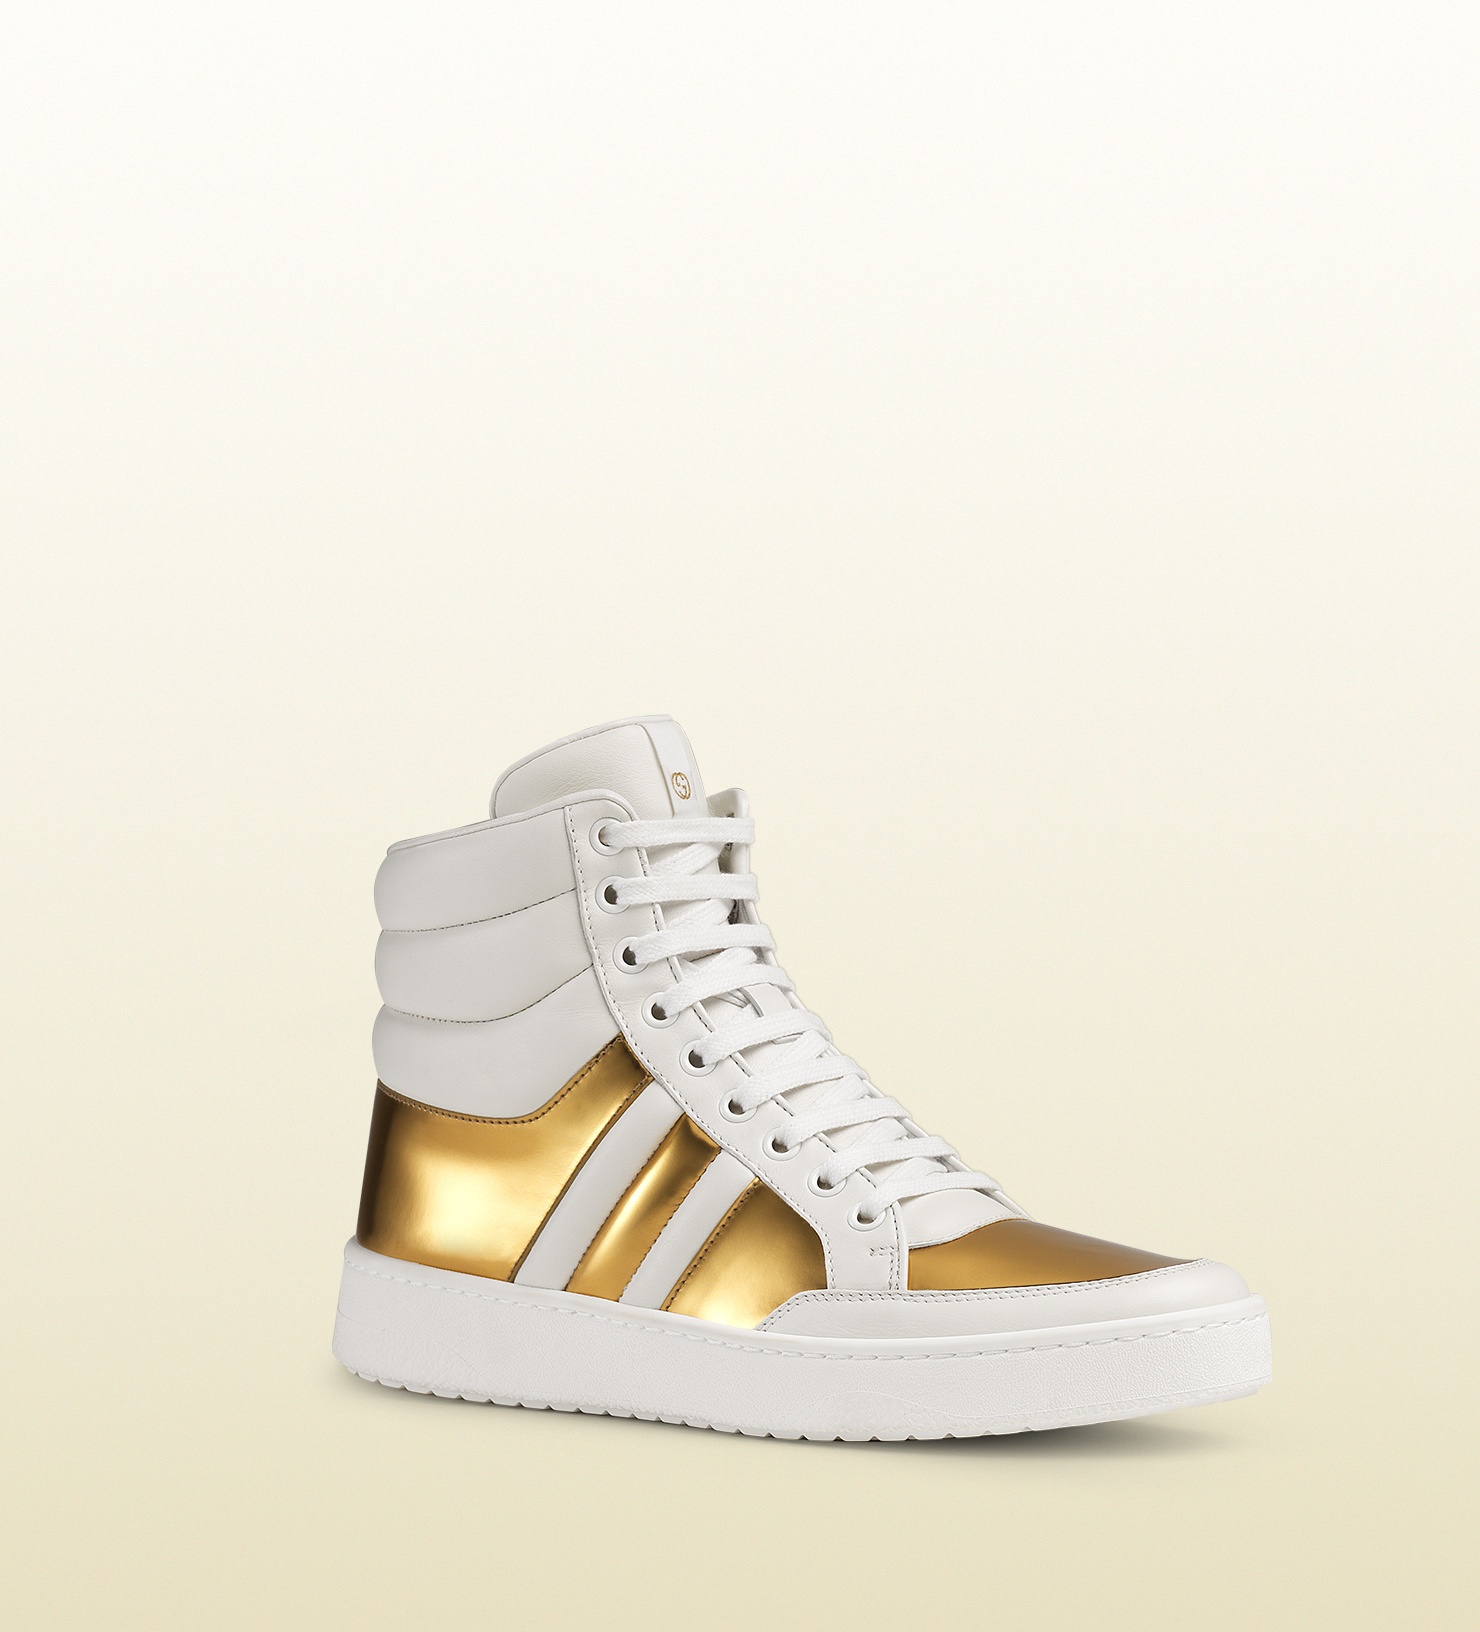 Gucci Shoes White And Gold